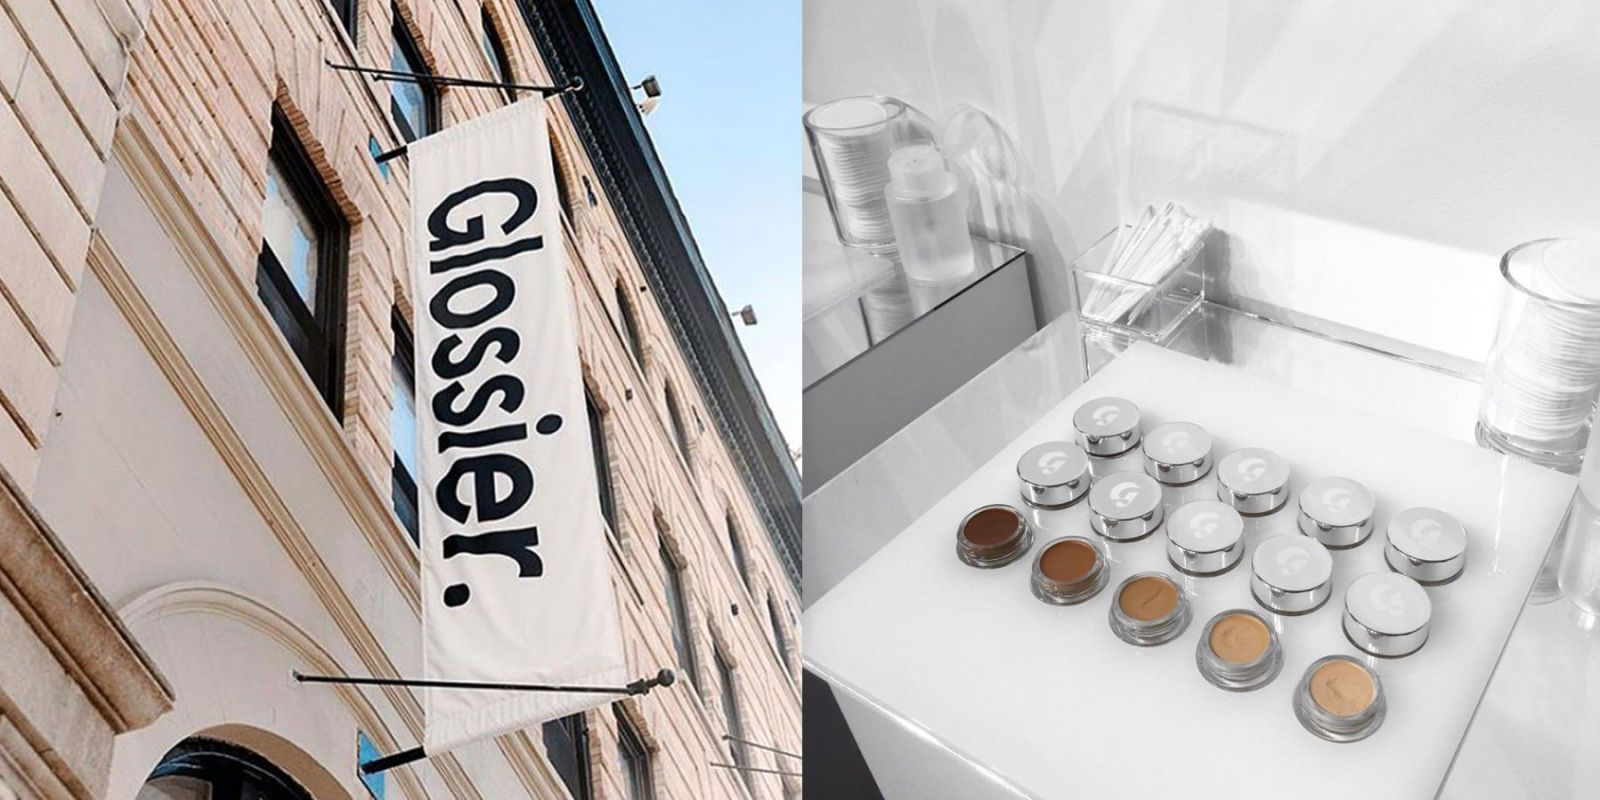 Glossier Opens Their First Store - Glossier Beauty Showroom in NYC